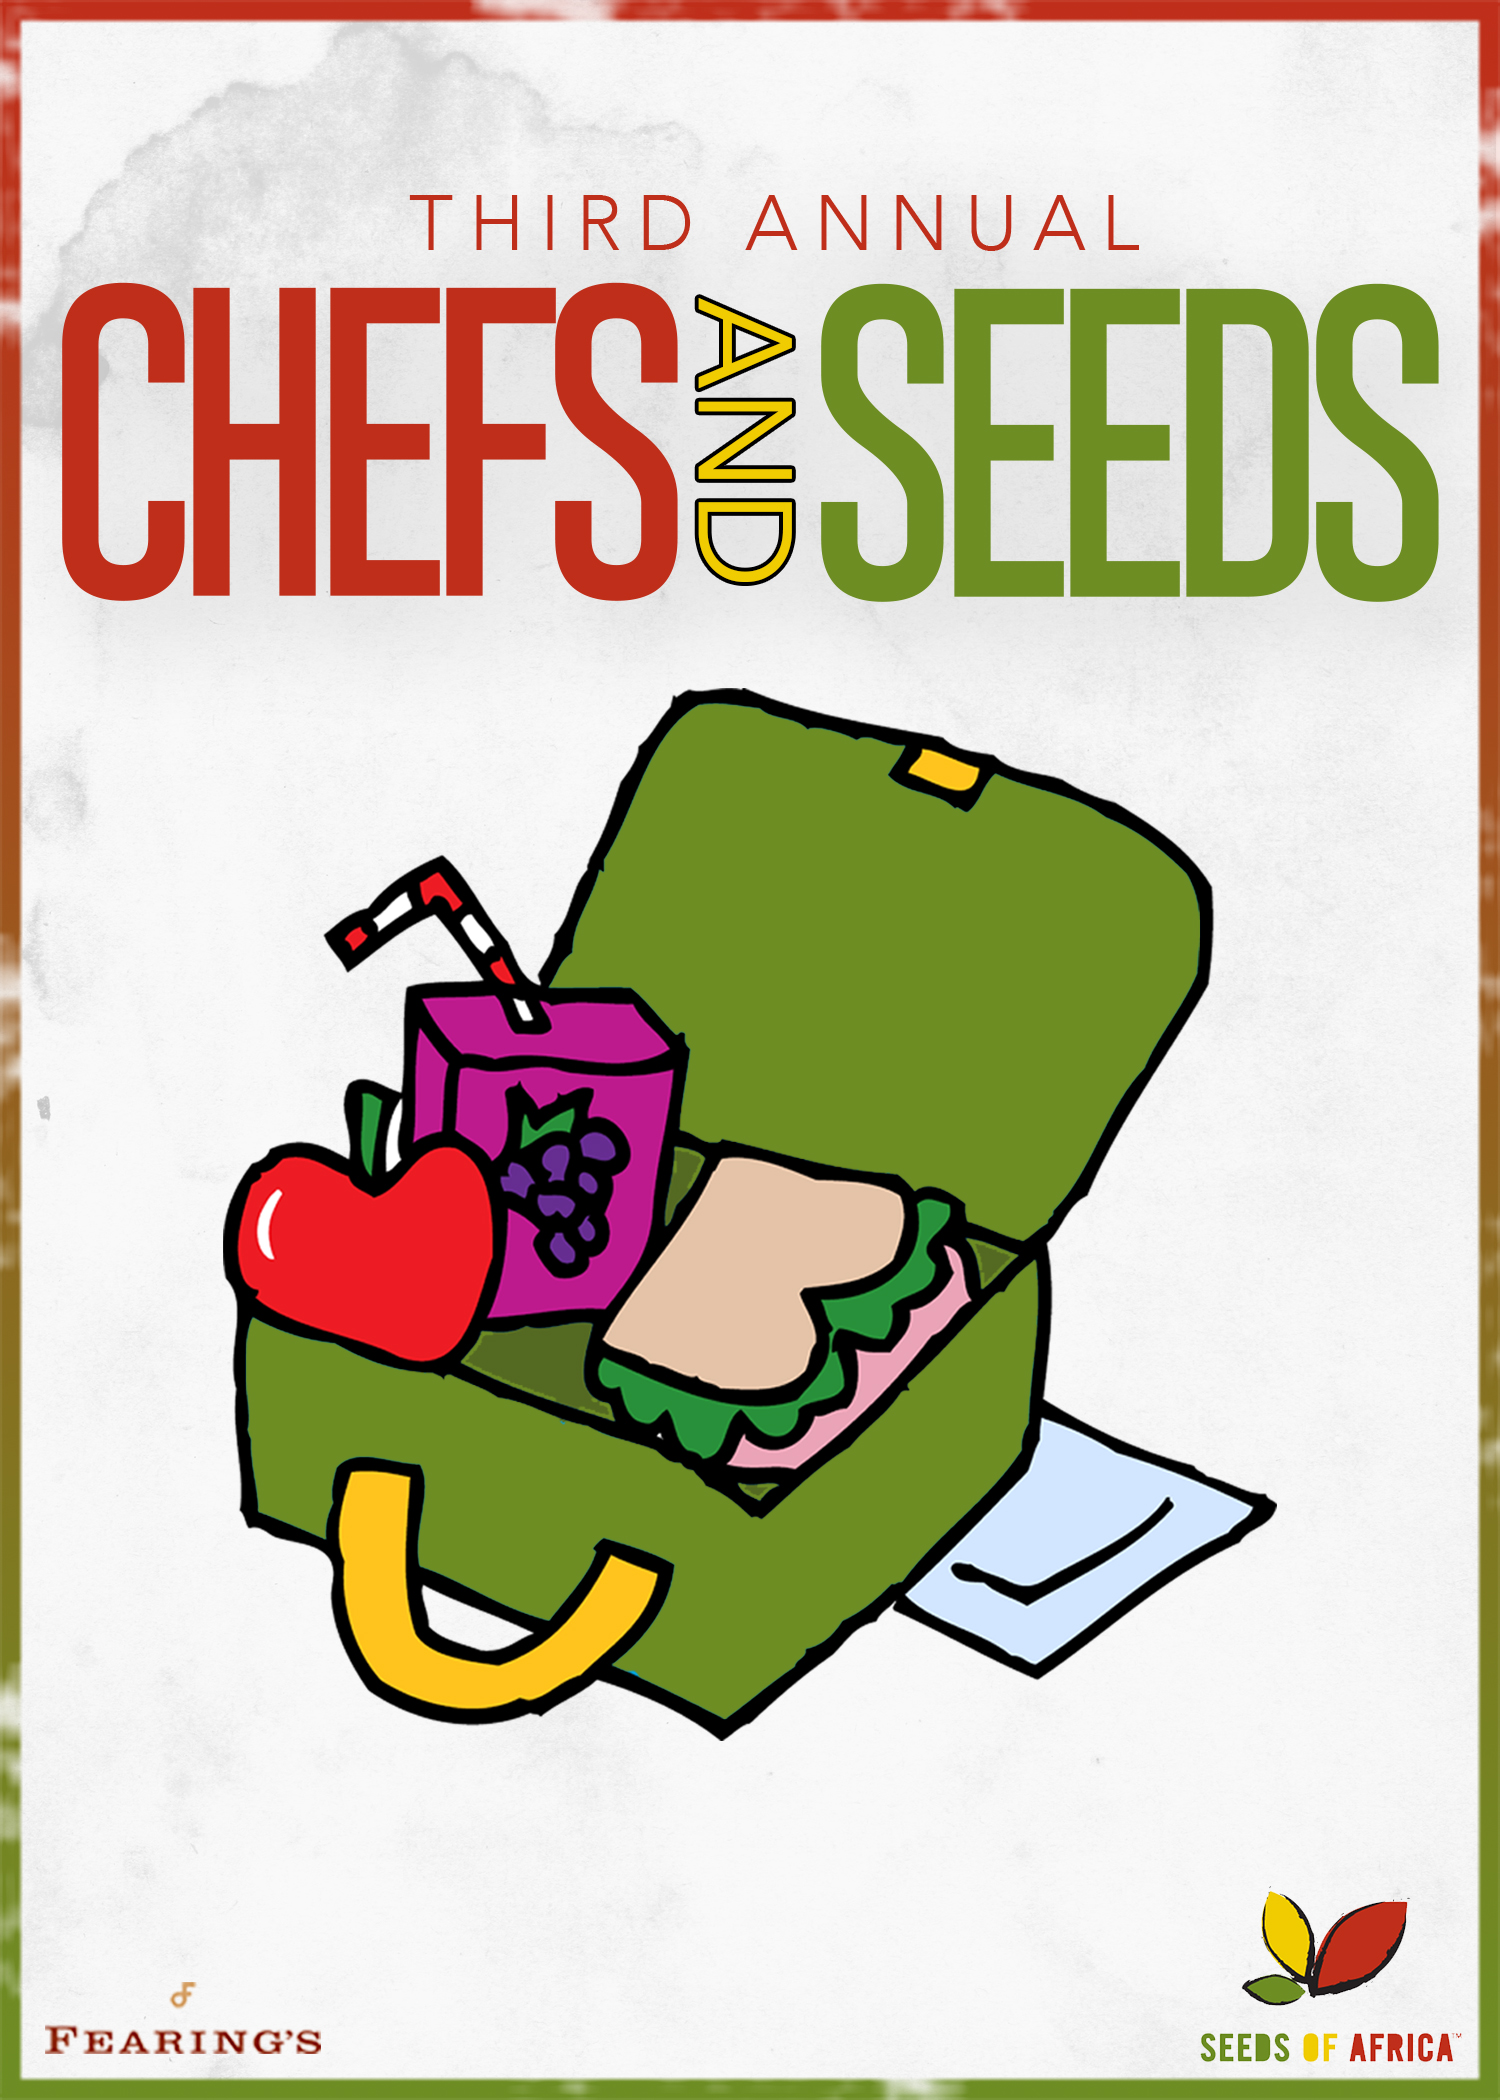 Chef & Seeds: You're Invited!